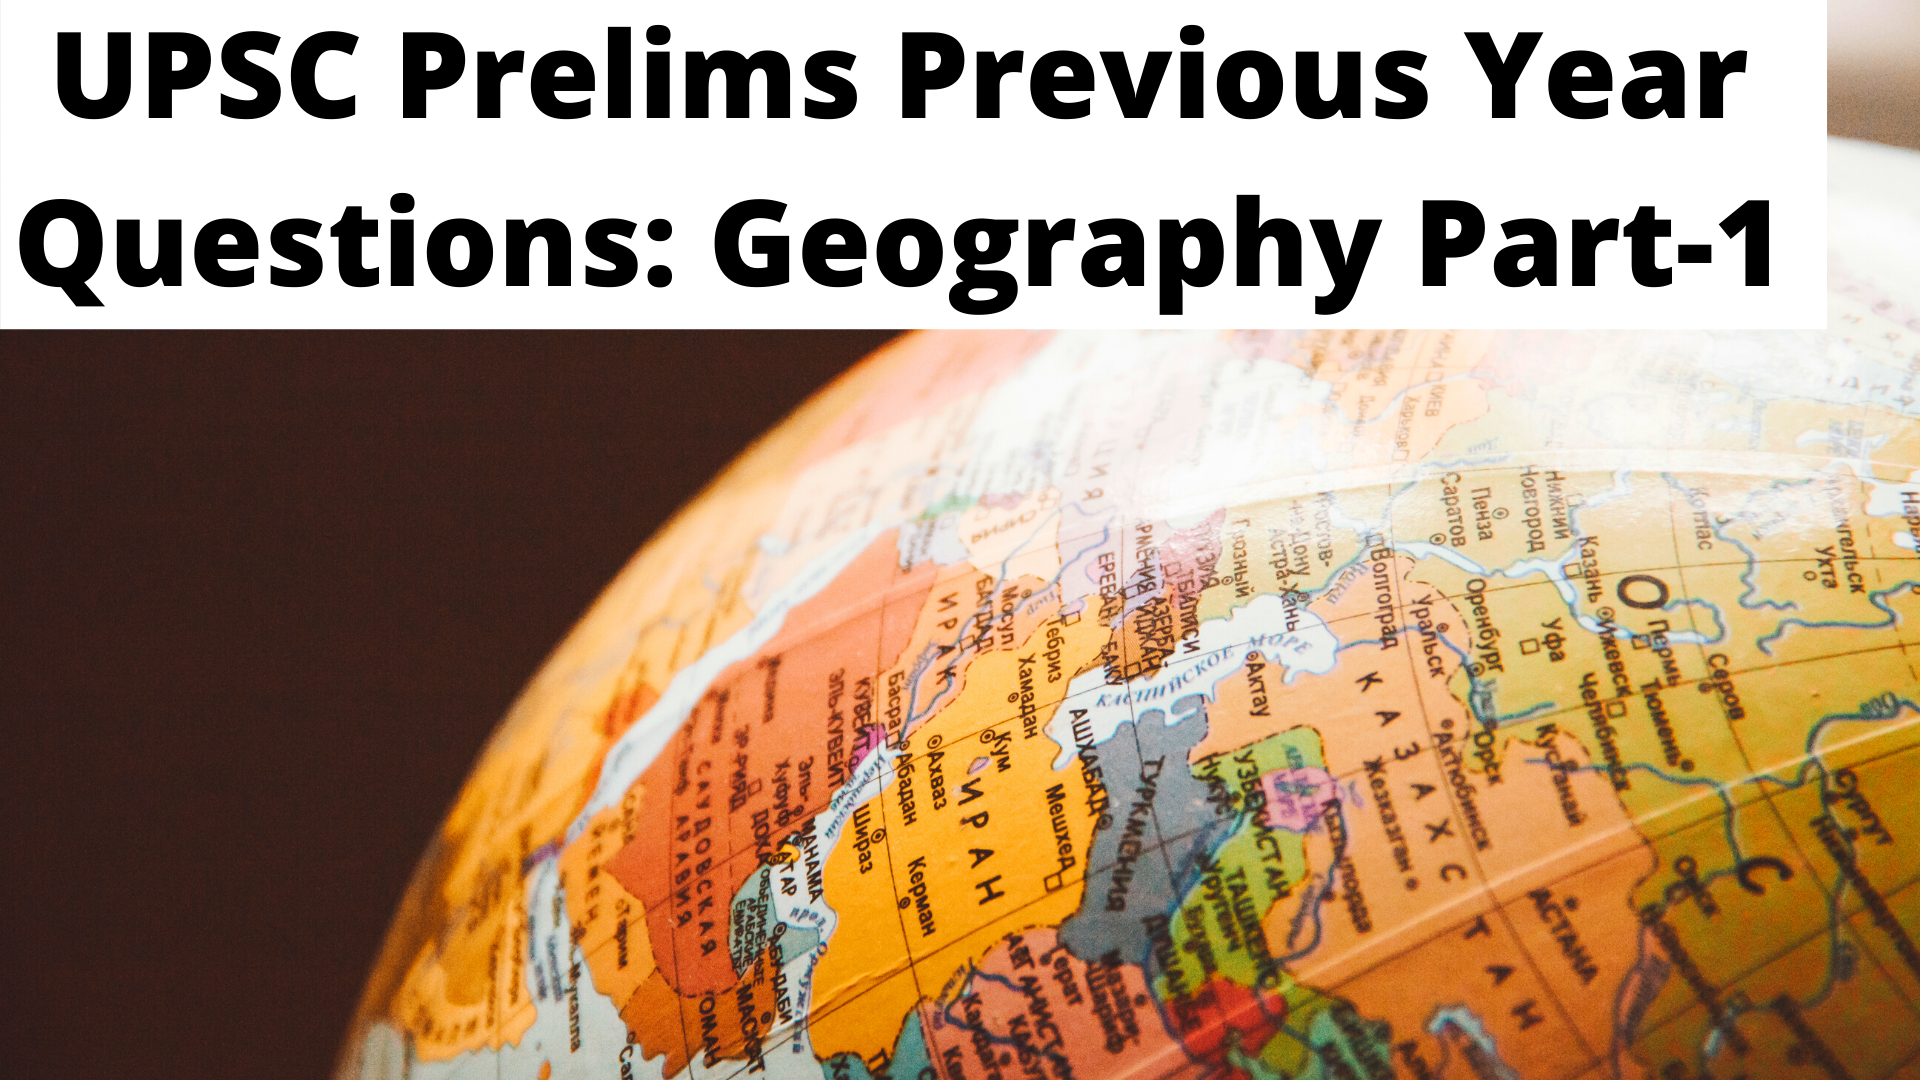 UPSC Prelims Previous Year Questions: Geography Part-1